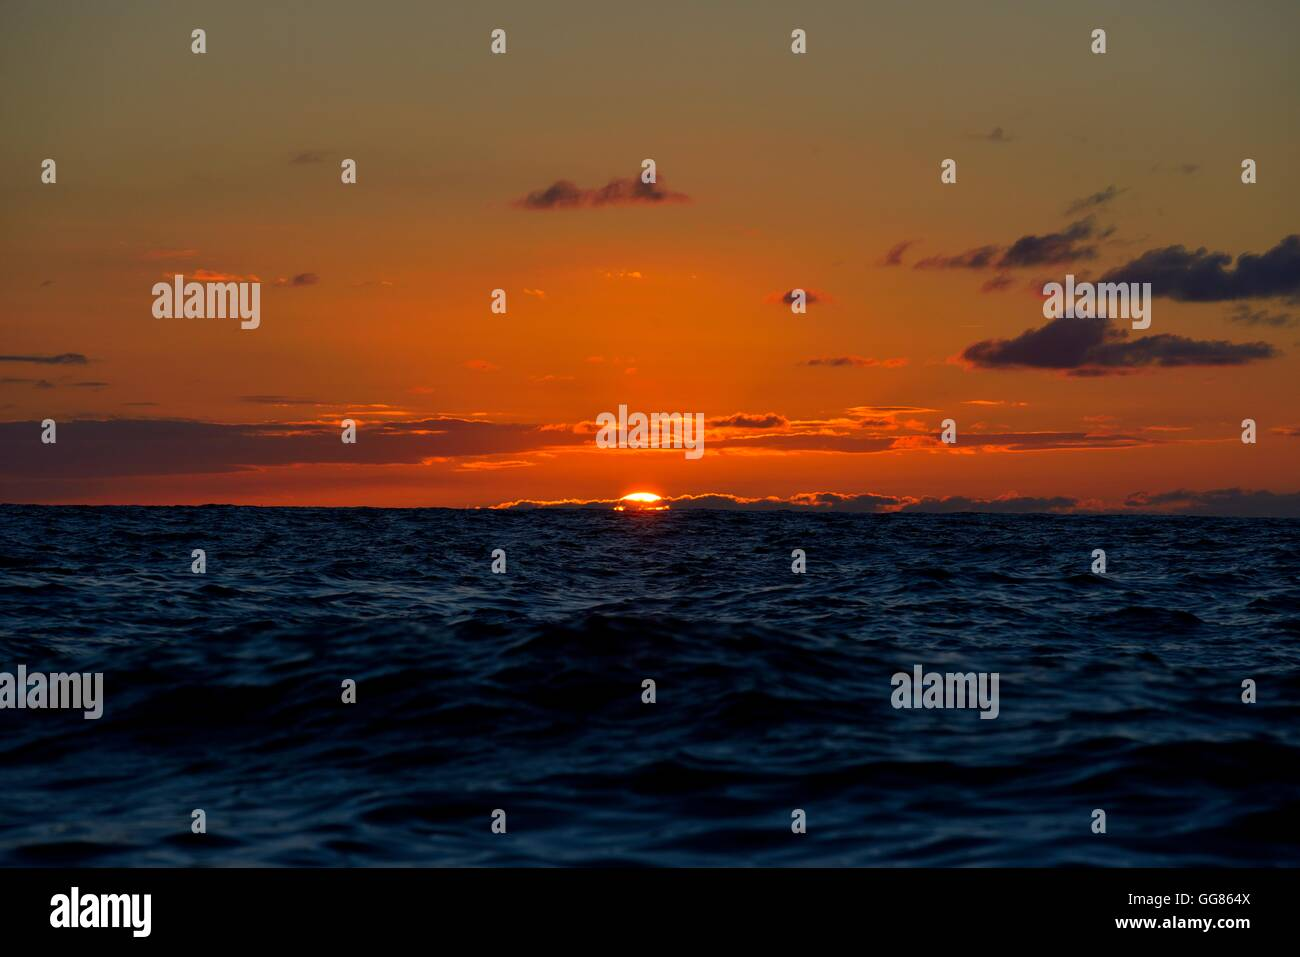 Image taken from the setting sun at sea - Stock Image